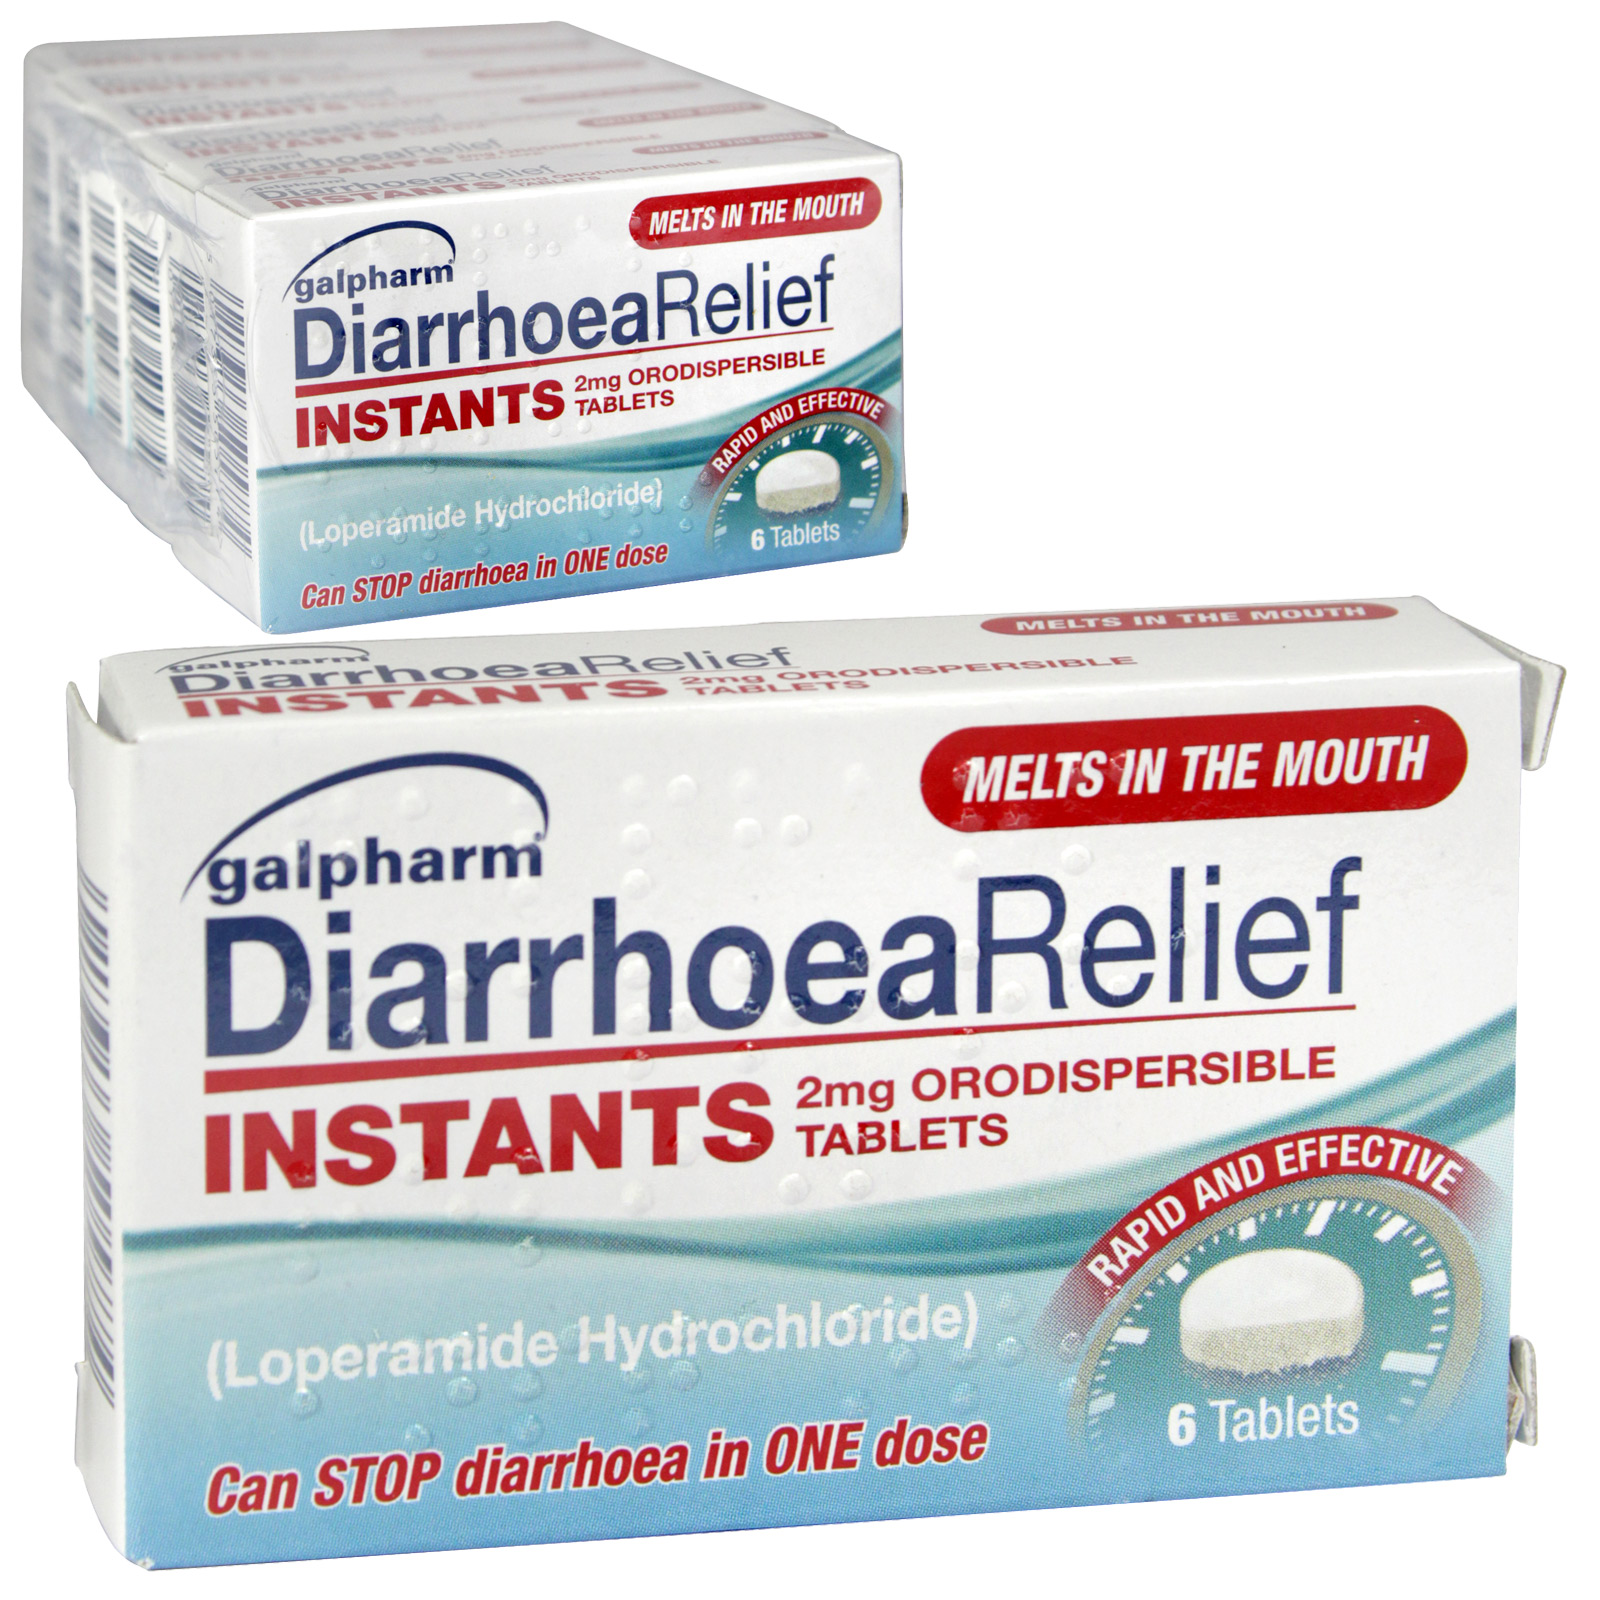 GALPHARM DIARRHOEA RELIEF 6 INSTANTS X6 (NON RETURNABLE)